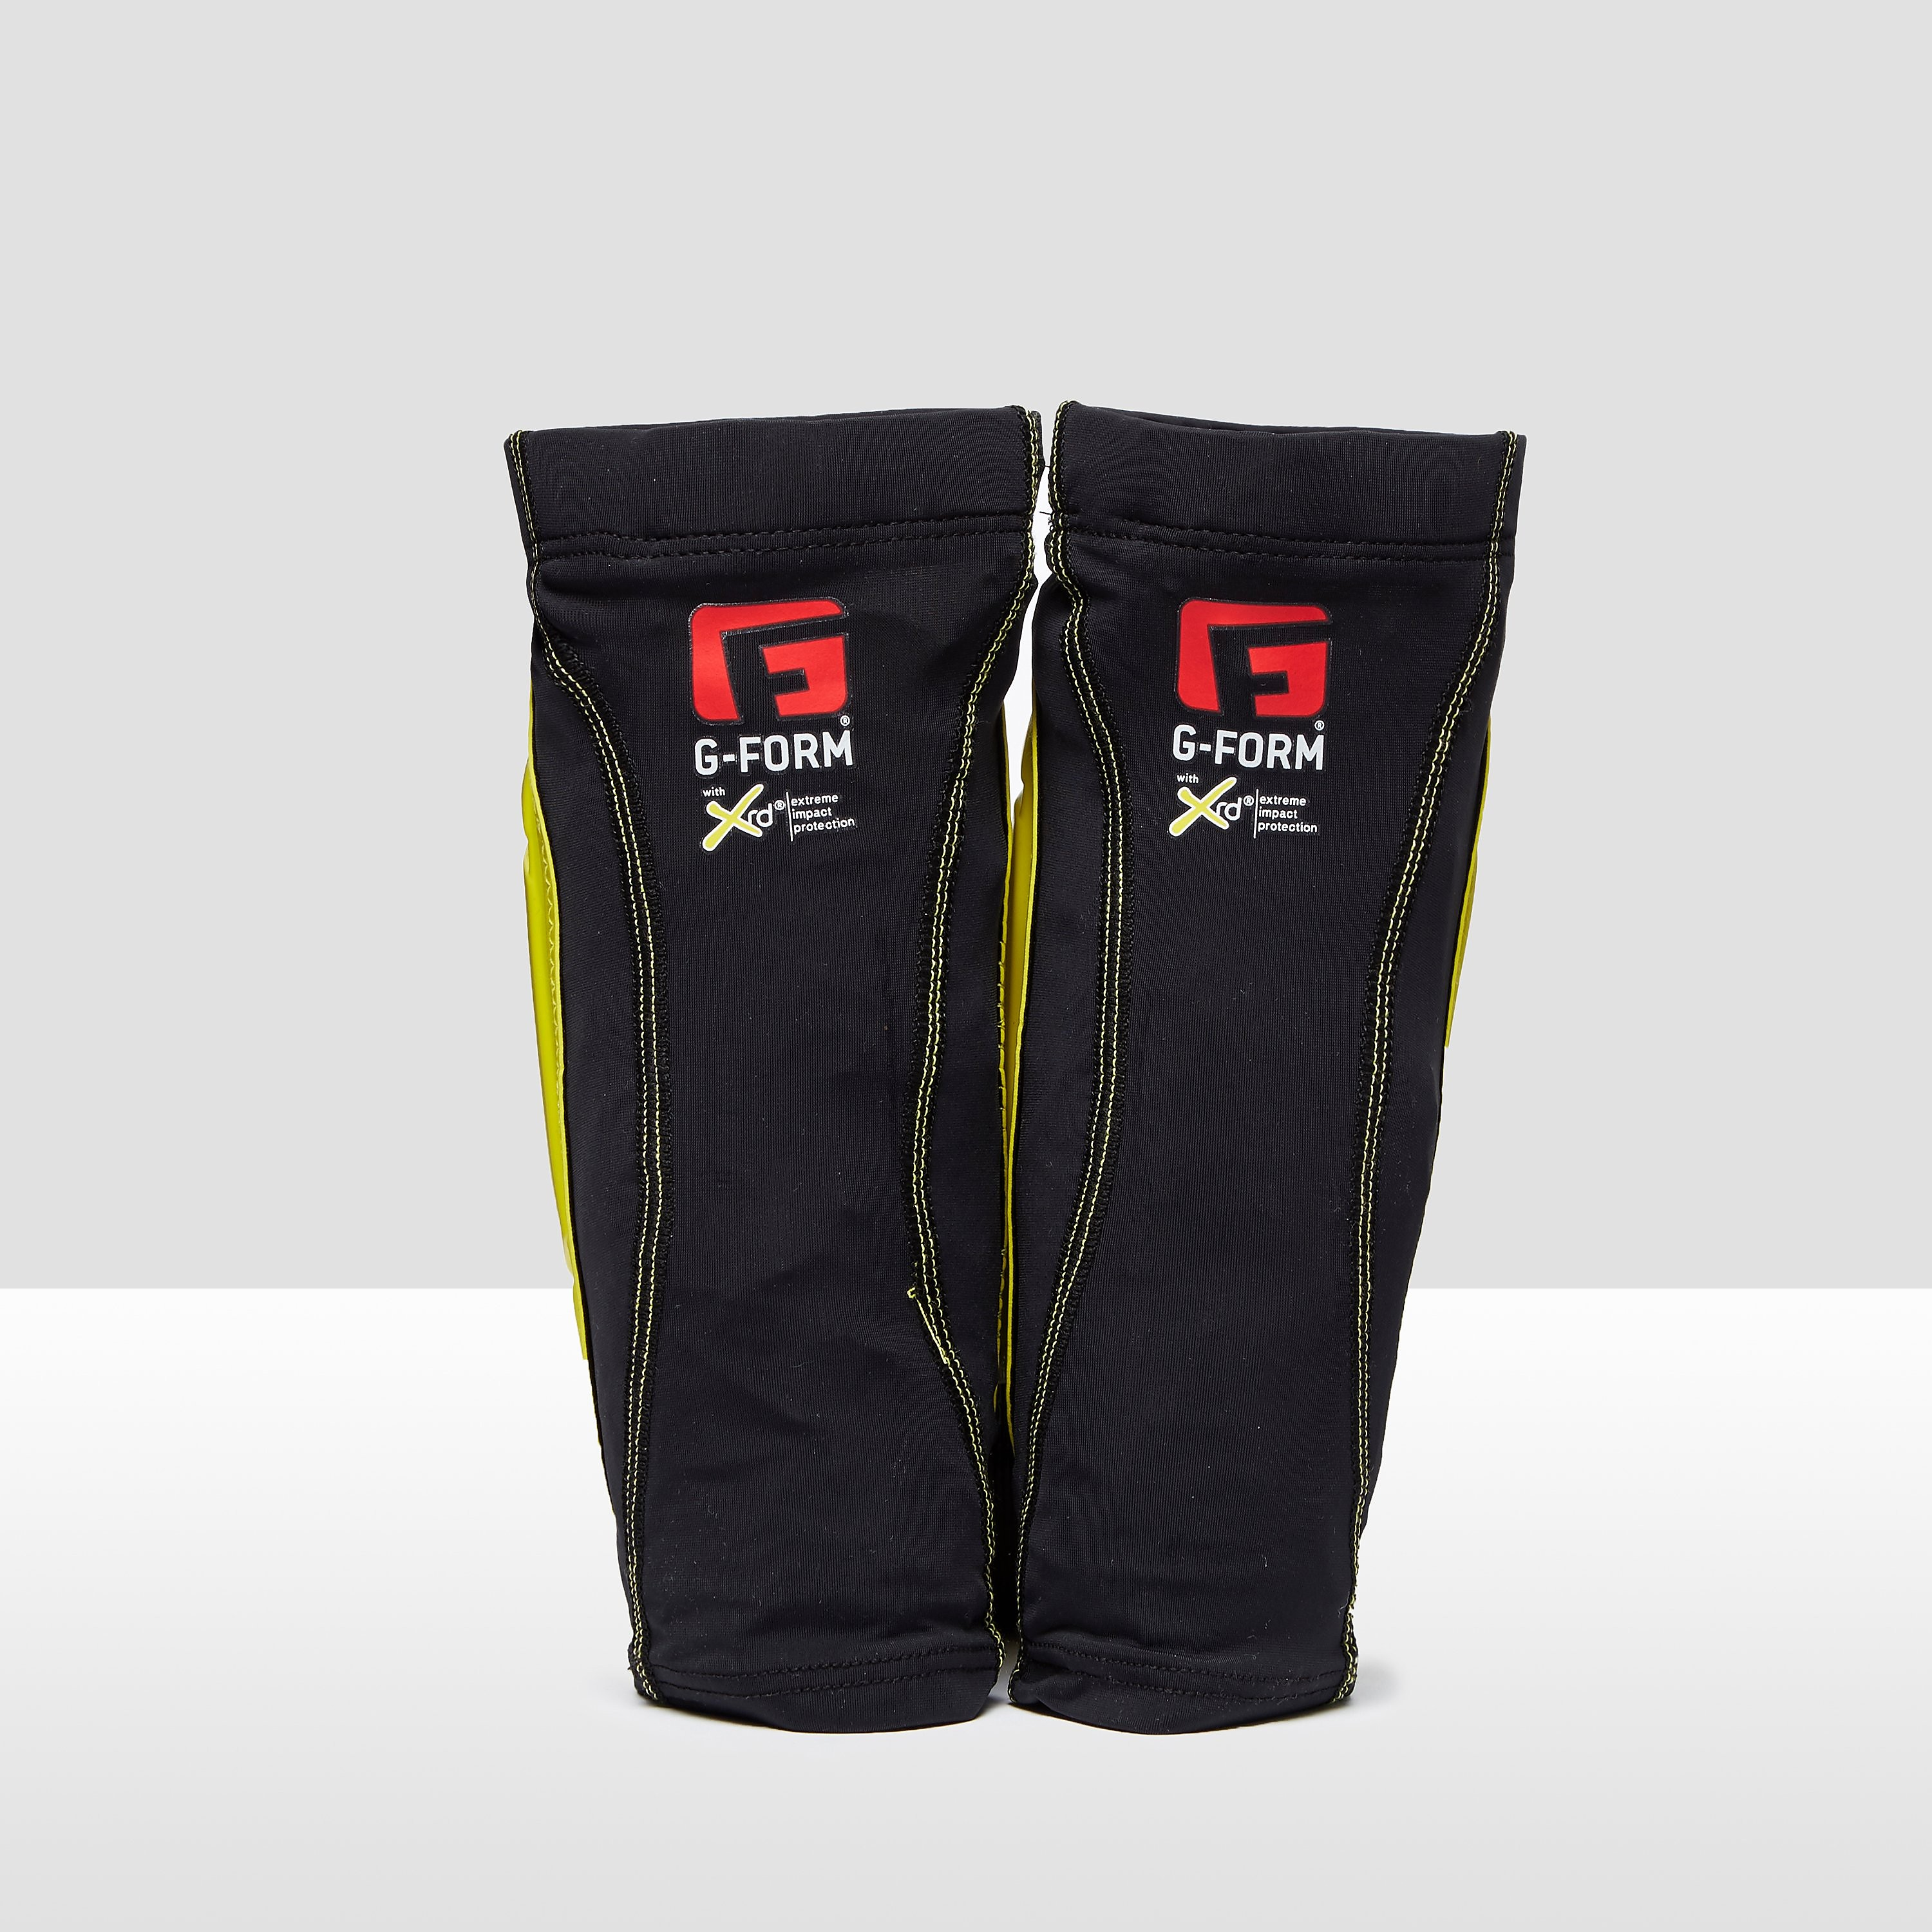 G-Form Pro Youth Shin Guards